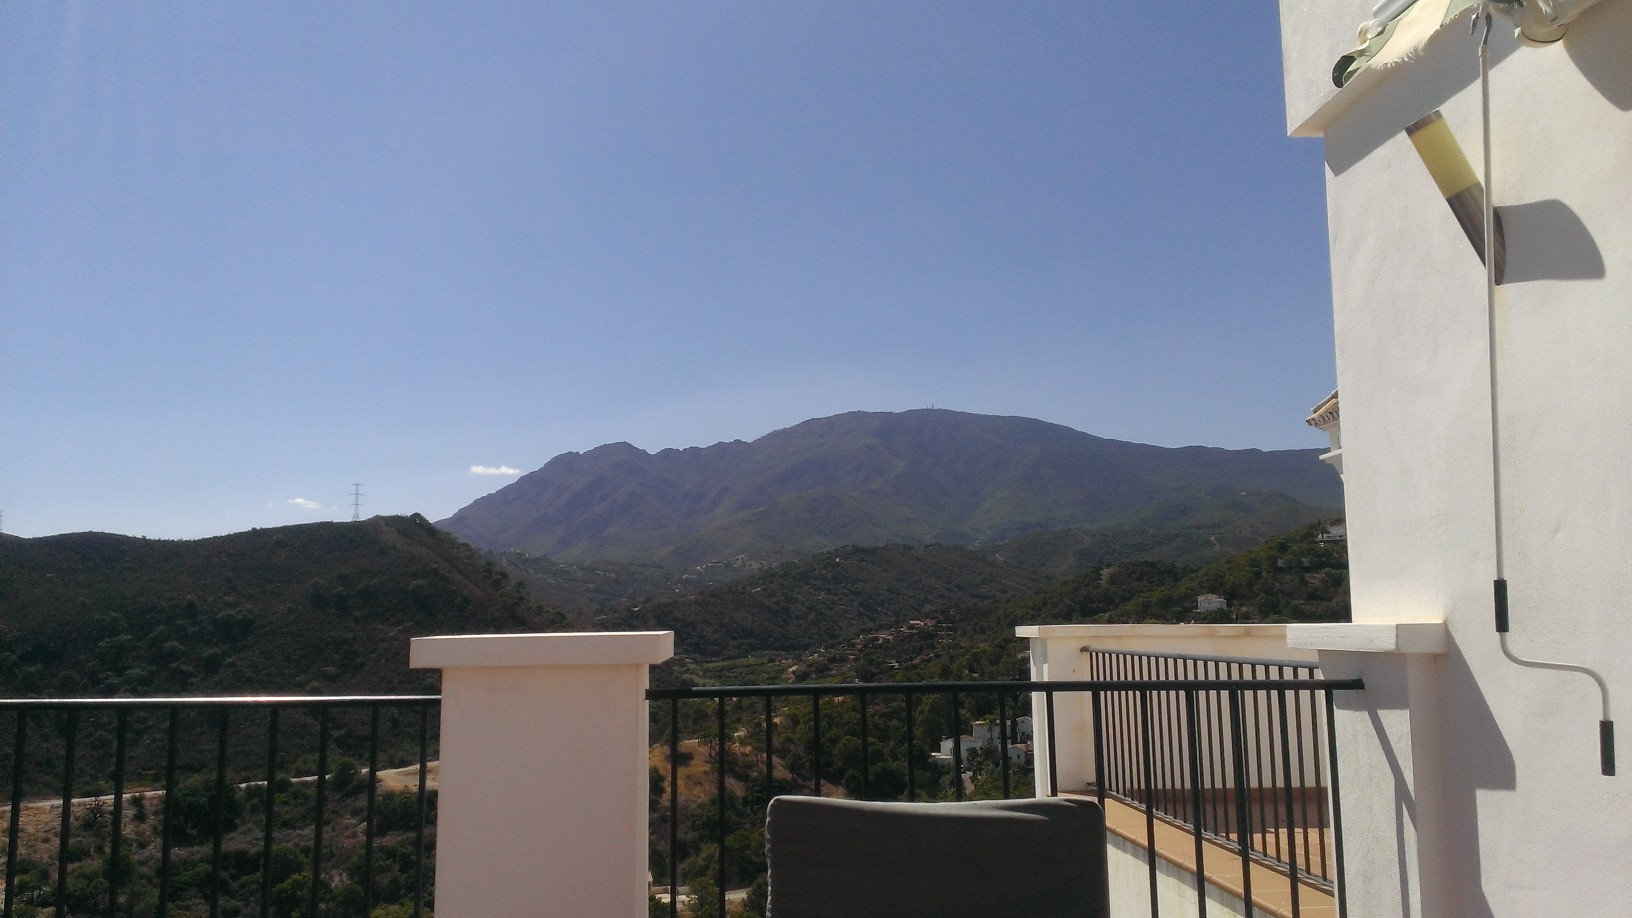 Mountain View From Balcony At Forest Hills Rhap So Dy In Words